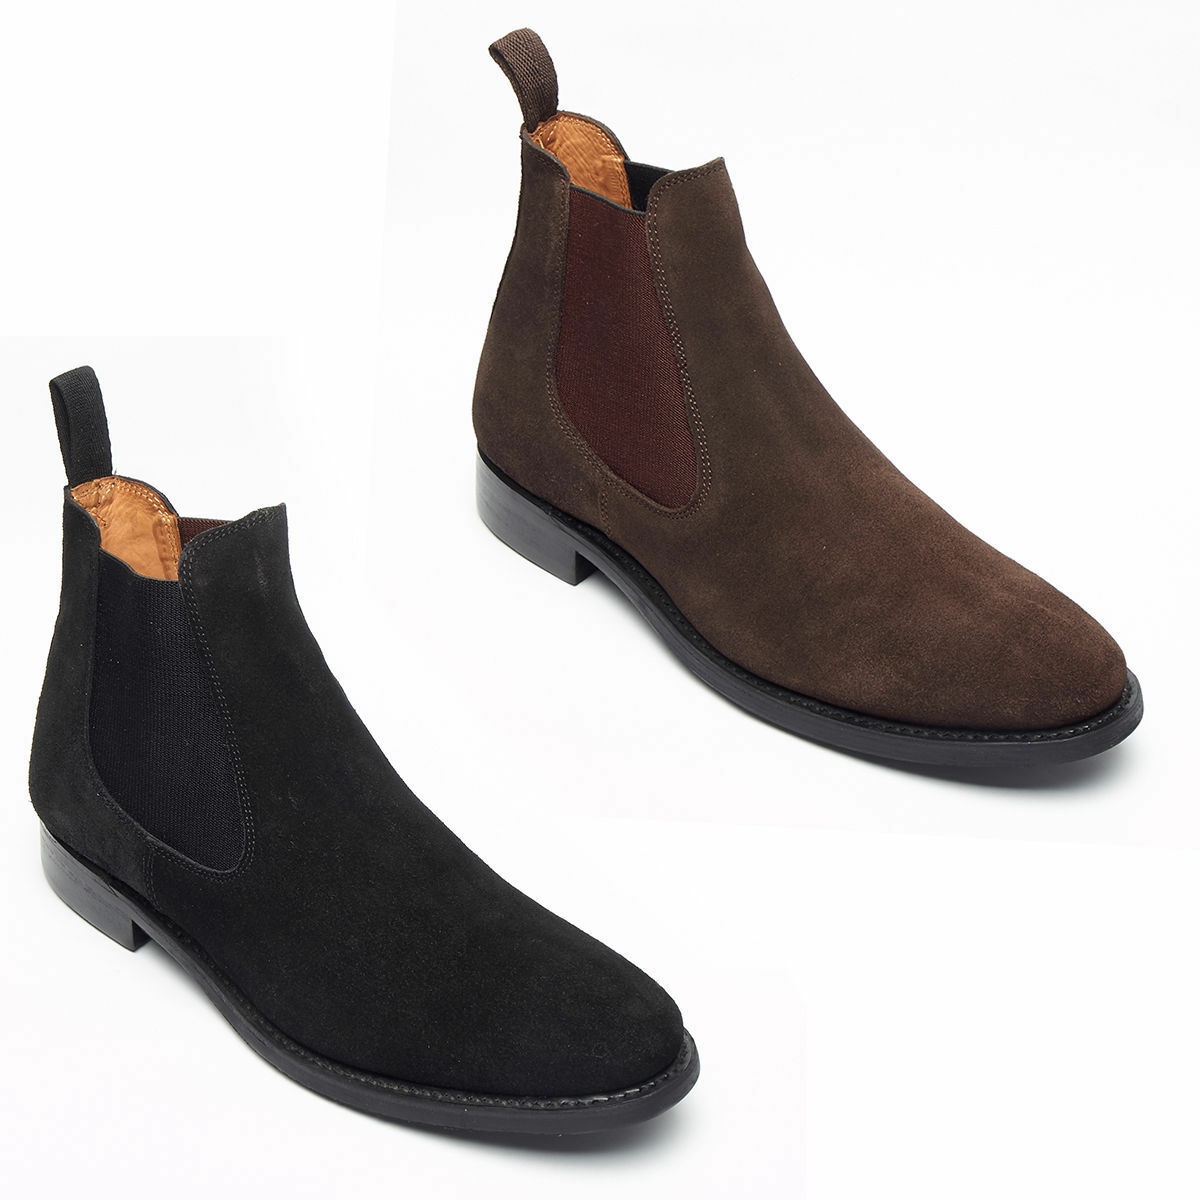 Mens Boys Chelsea Suede Goodyear Welted Sole Ankle Boots - Black All Size